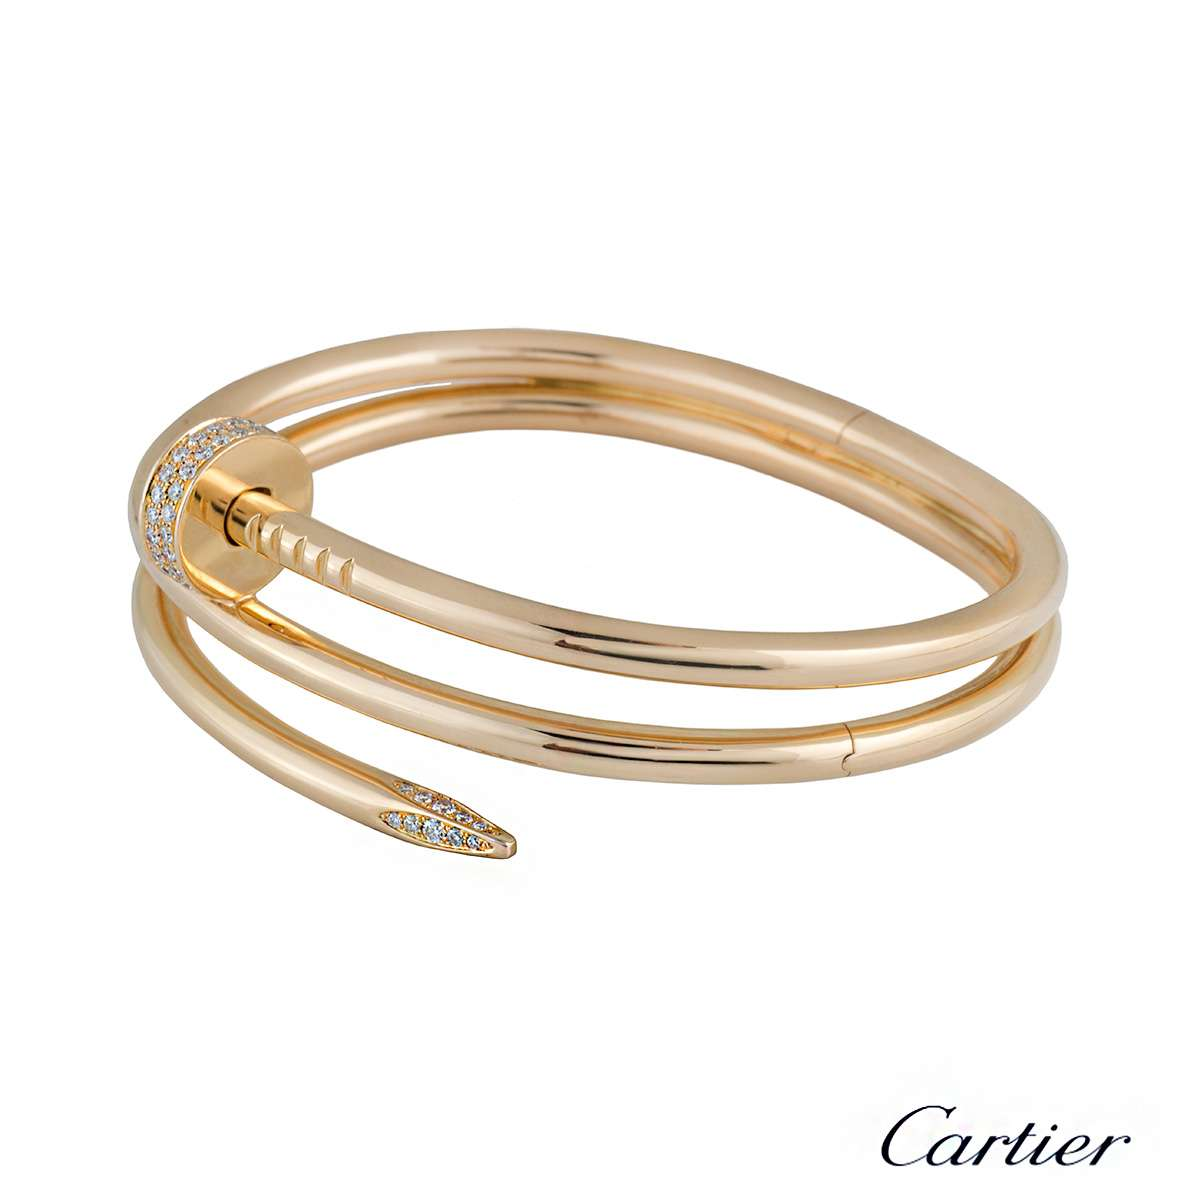 product nail brac gold juste clou bangle bracelet un cartier yellow size